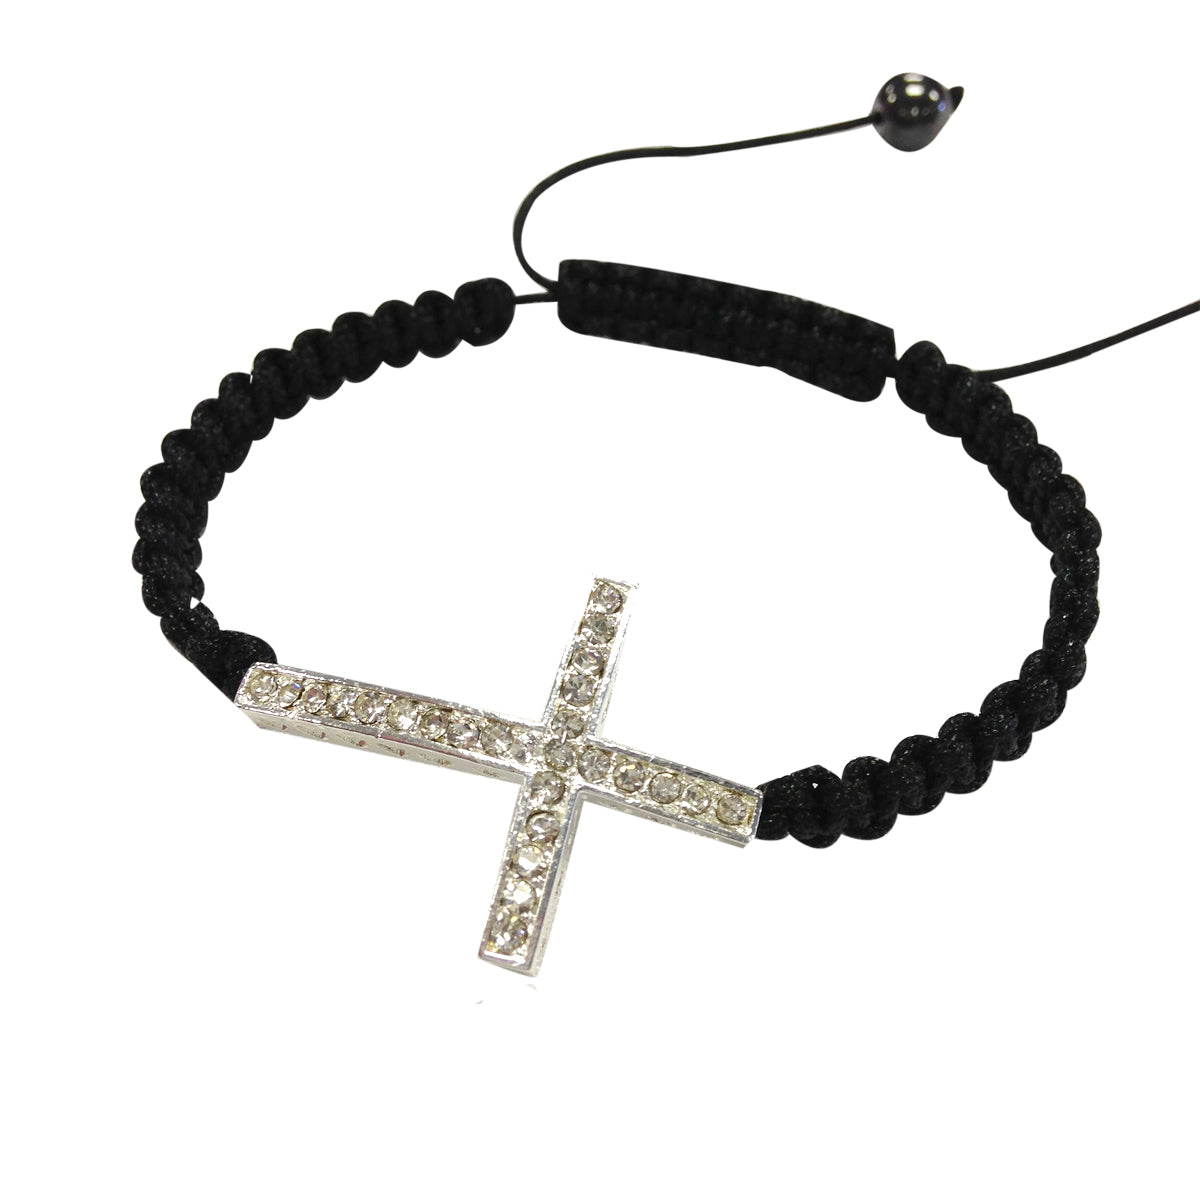 Bracelet Rhinestone with Studded Sideways Cross